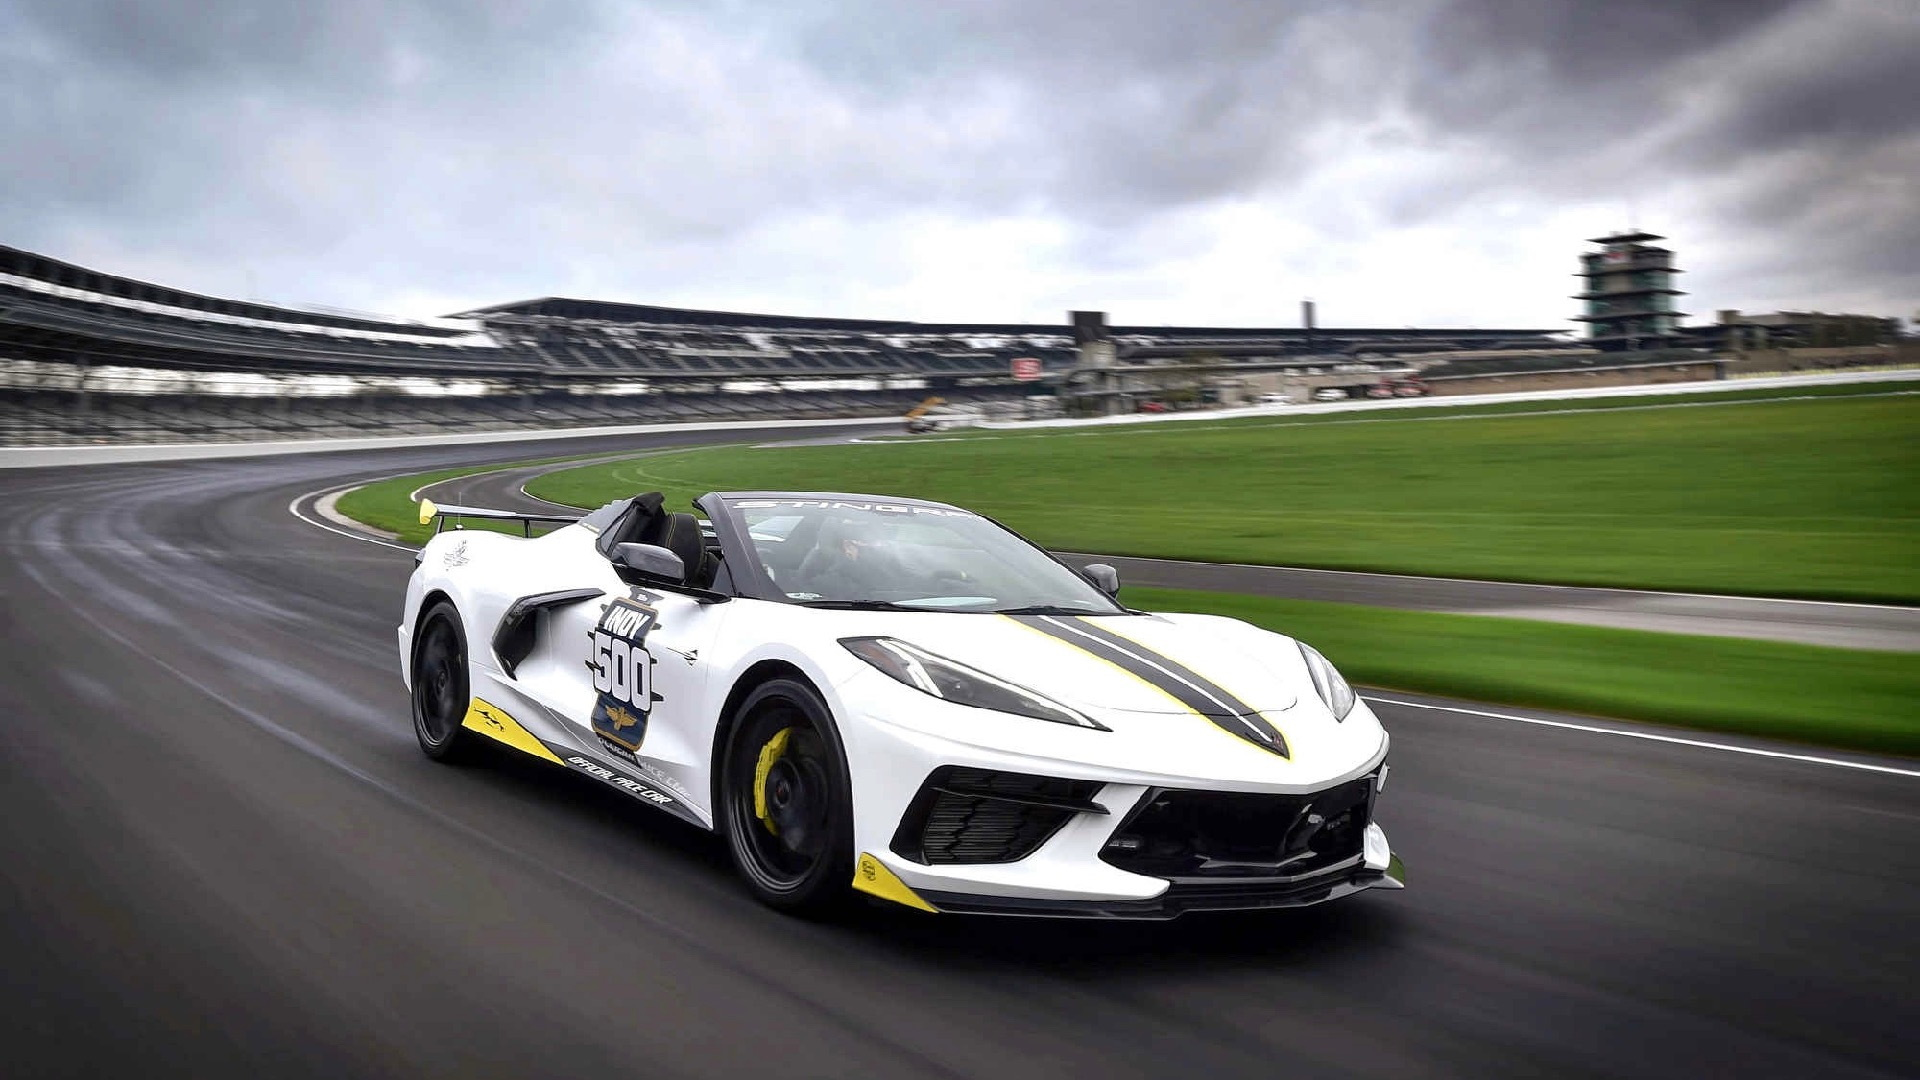 2021 Chevrolet Corvette Stingray Constlible Indianapolis 500步行汽车